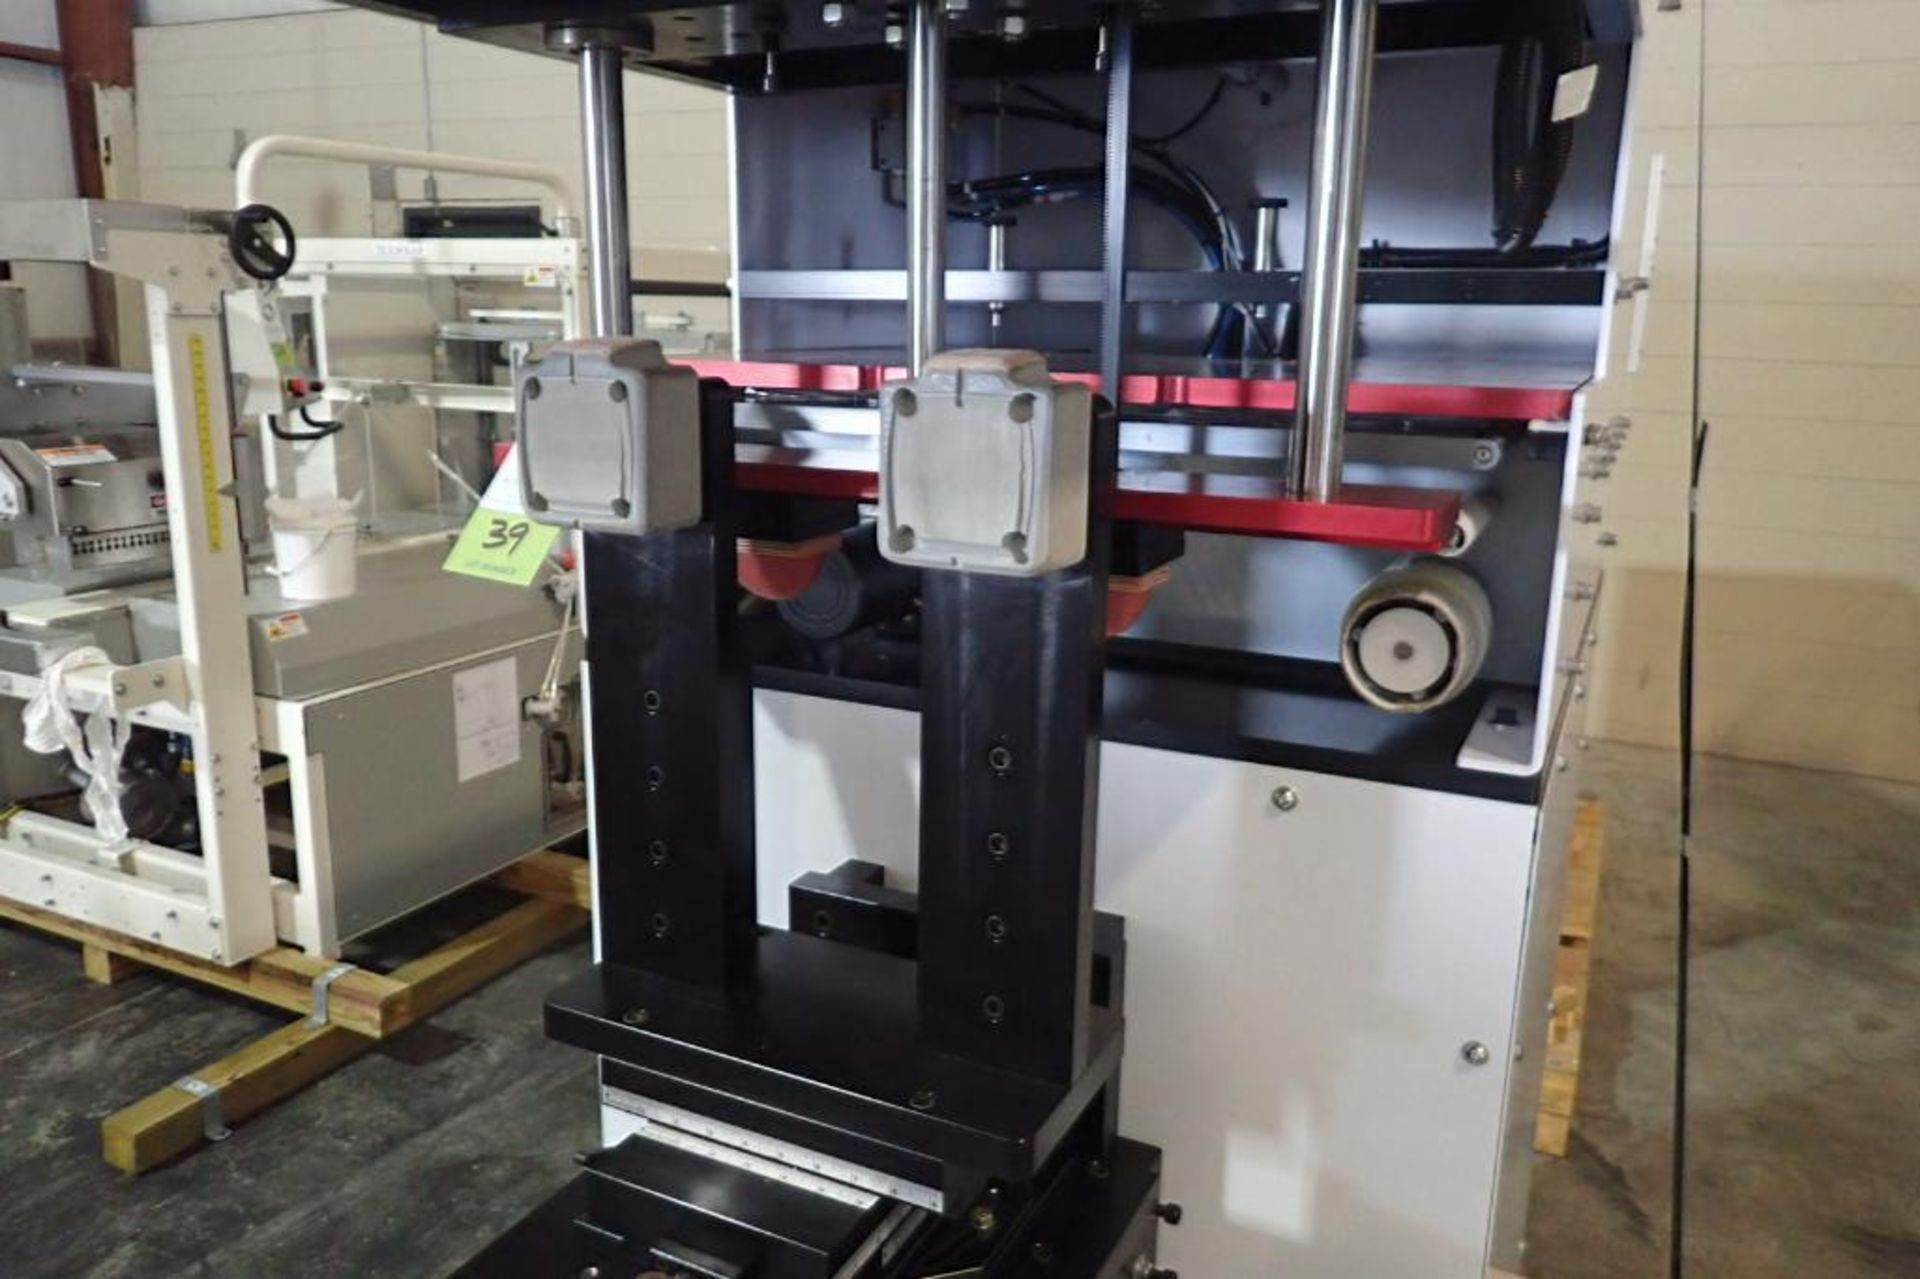 Lot 39 - 2015 Printex G8-150 double-action/wide pad printer, programmable controller and user-friendly